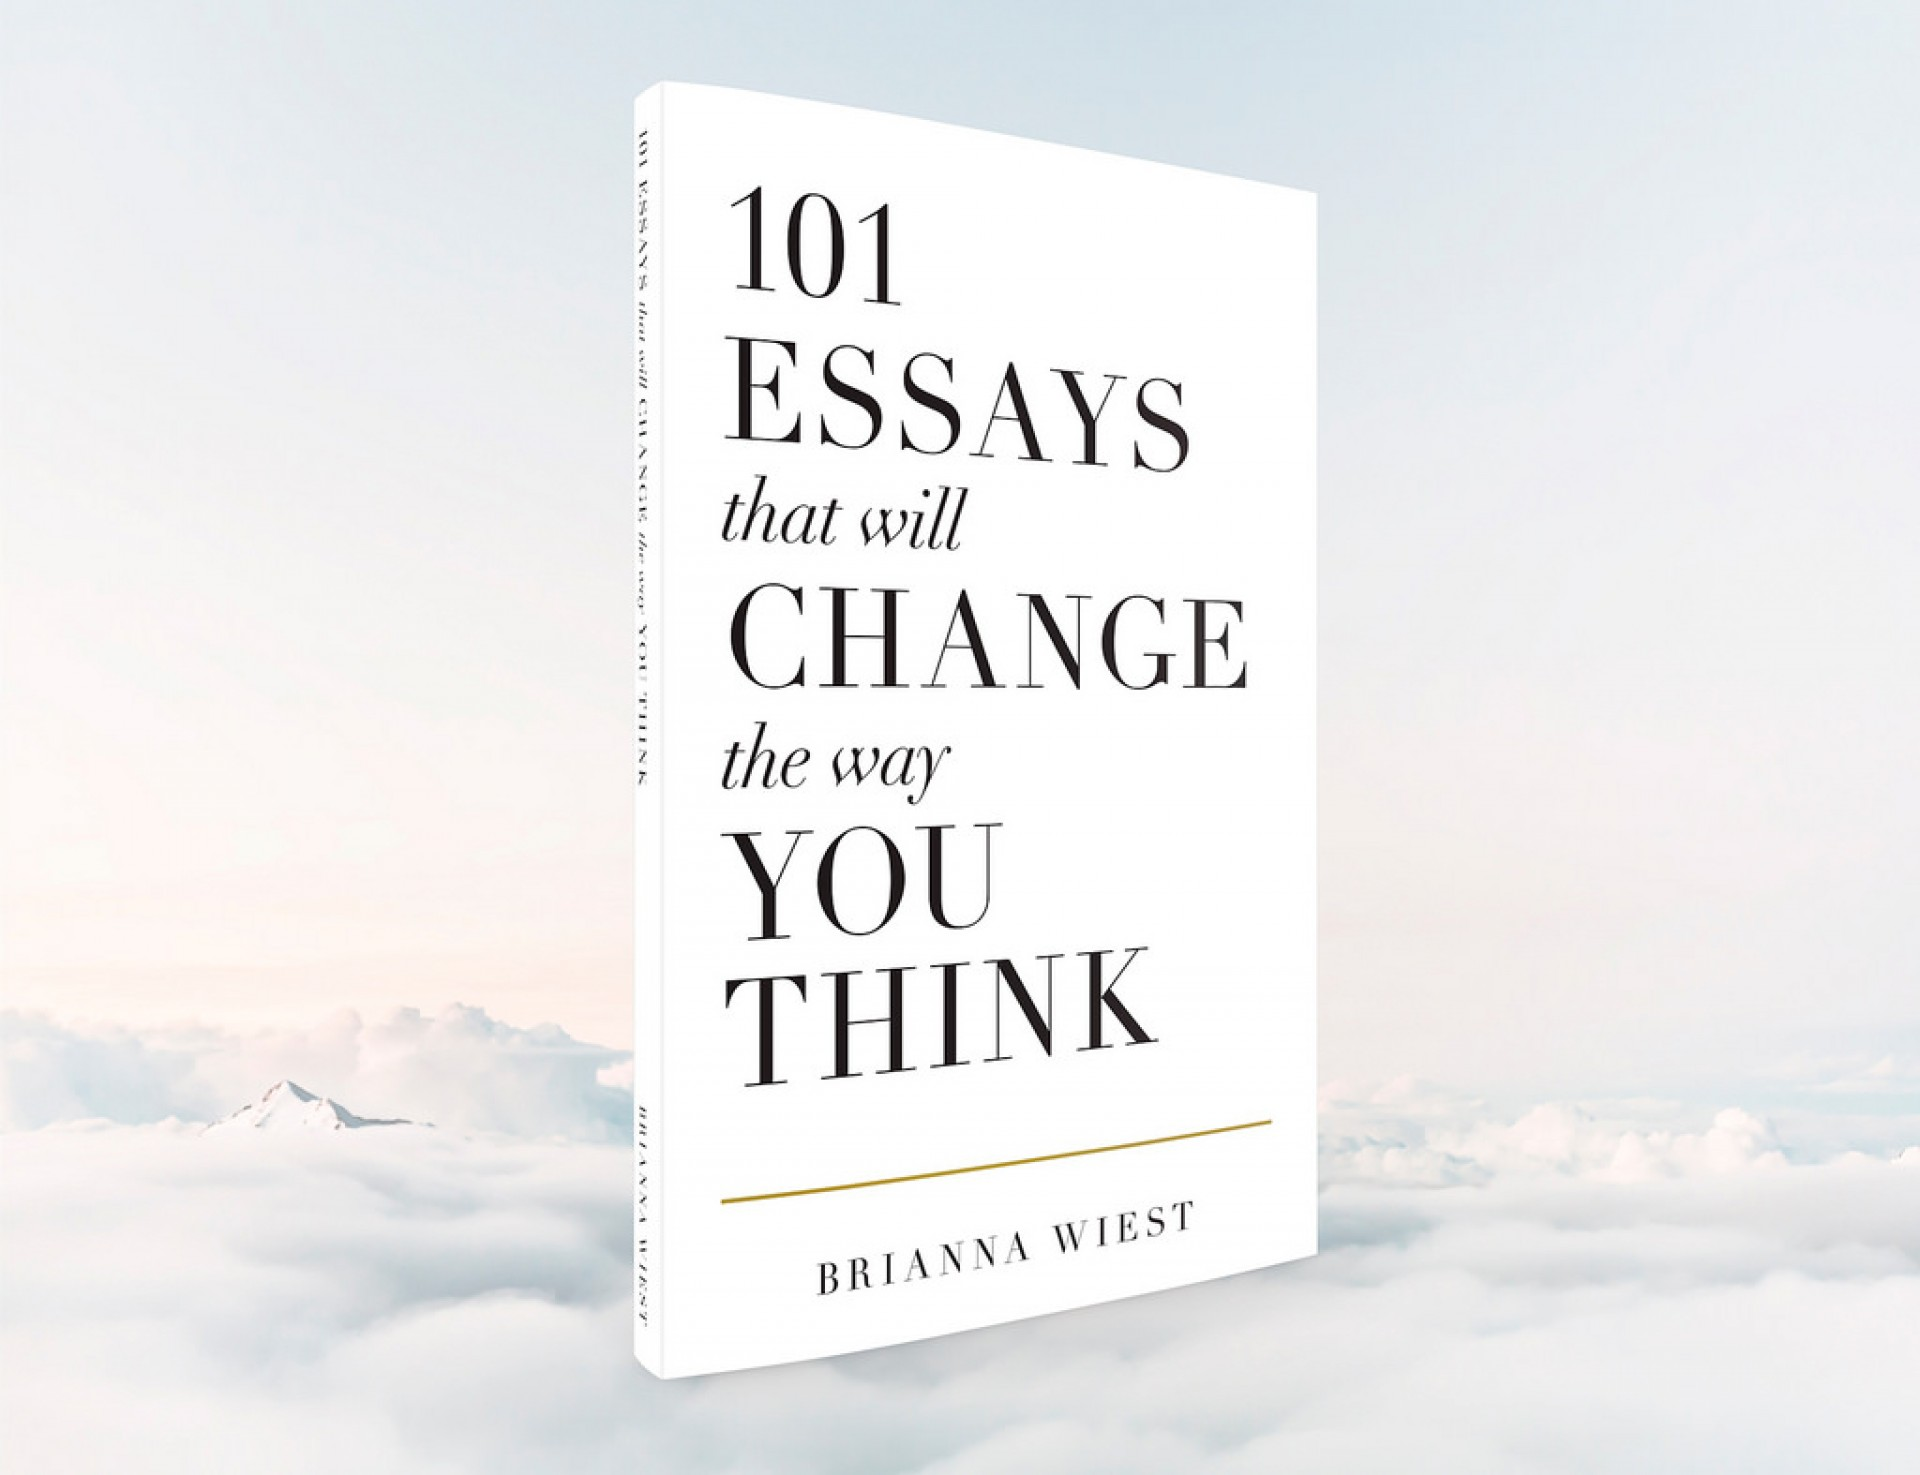 009 32779648903 9aedc27177 B Essay Example Essays That Will Change The Way You Unusual 101 Think Book Depository Barnes And Noble Review 1920